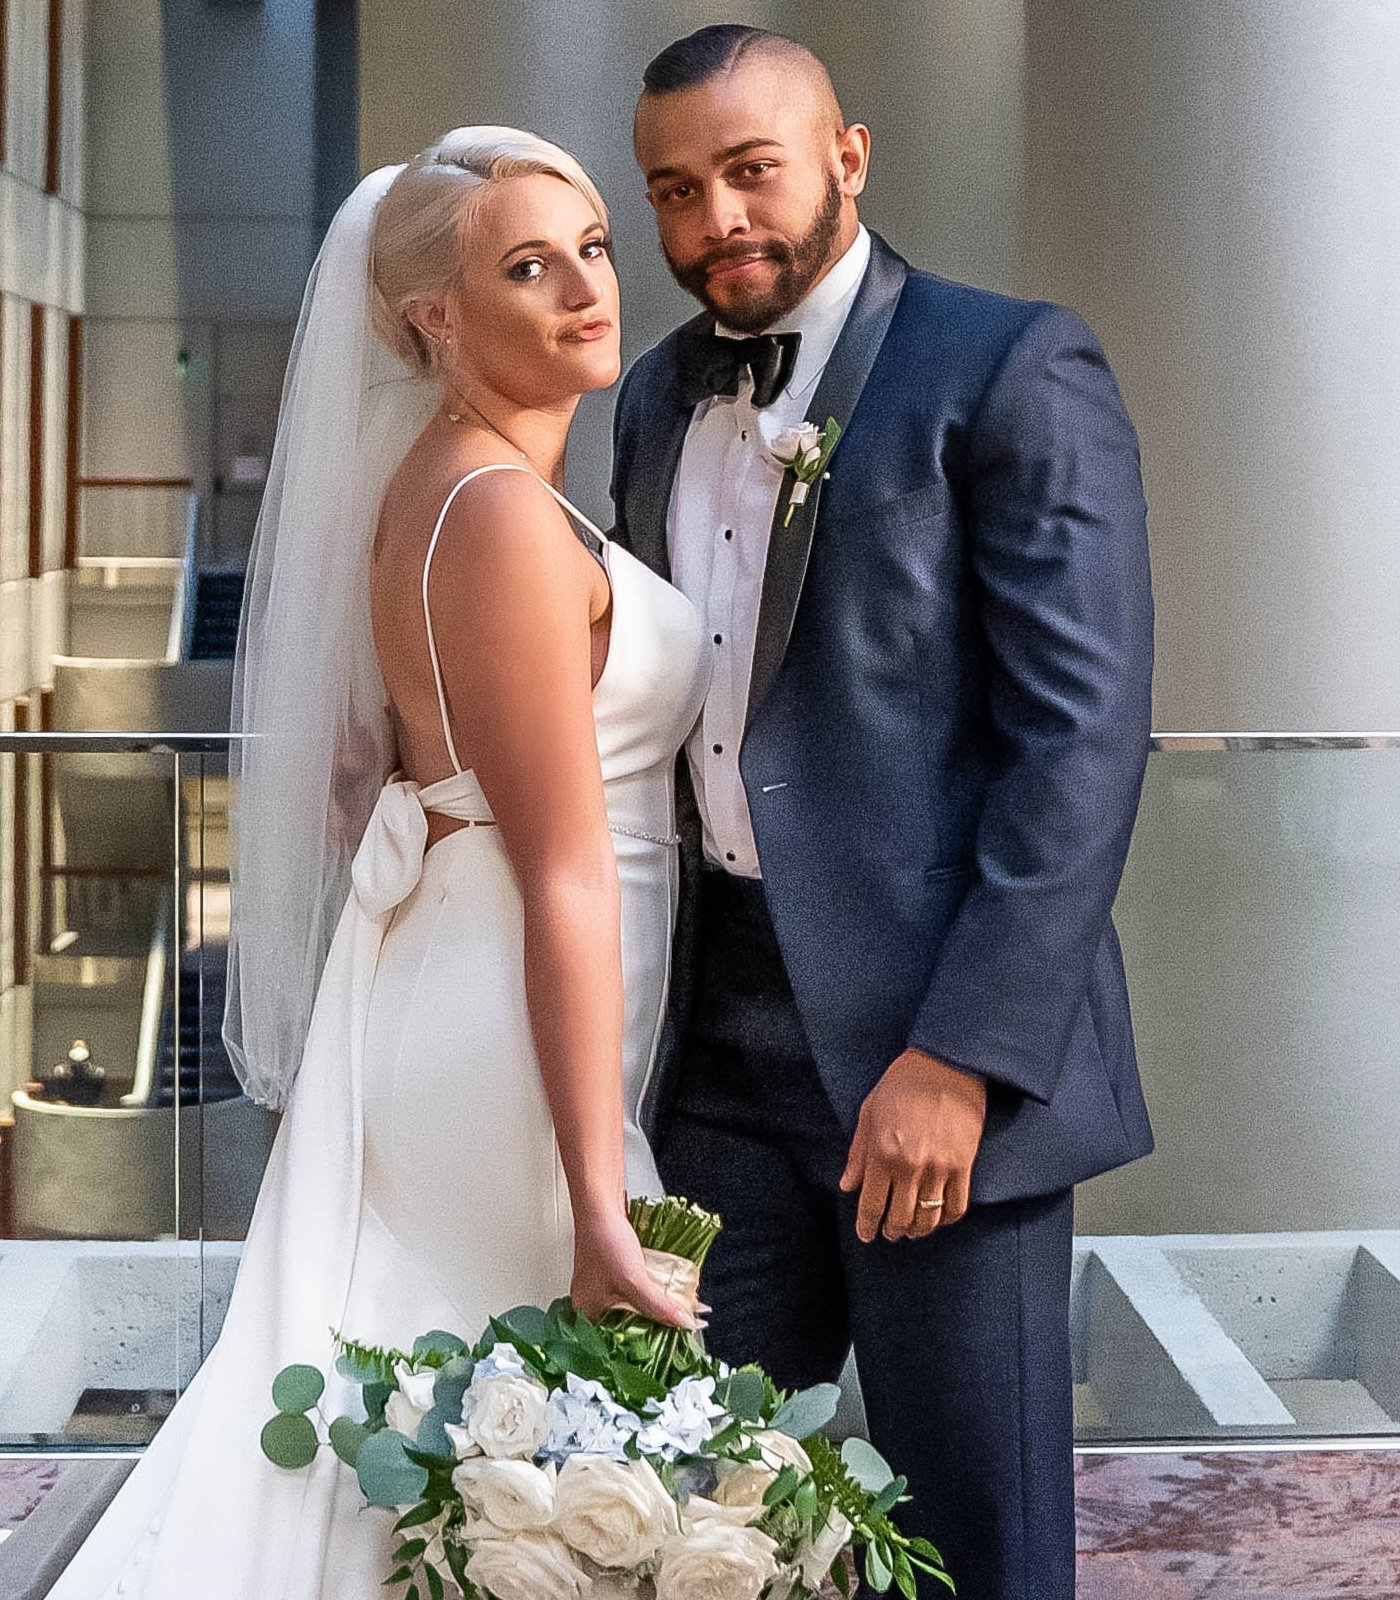 'Married At First Sight' Season 12 Couples Revealed! Meet